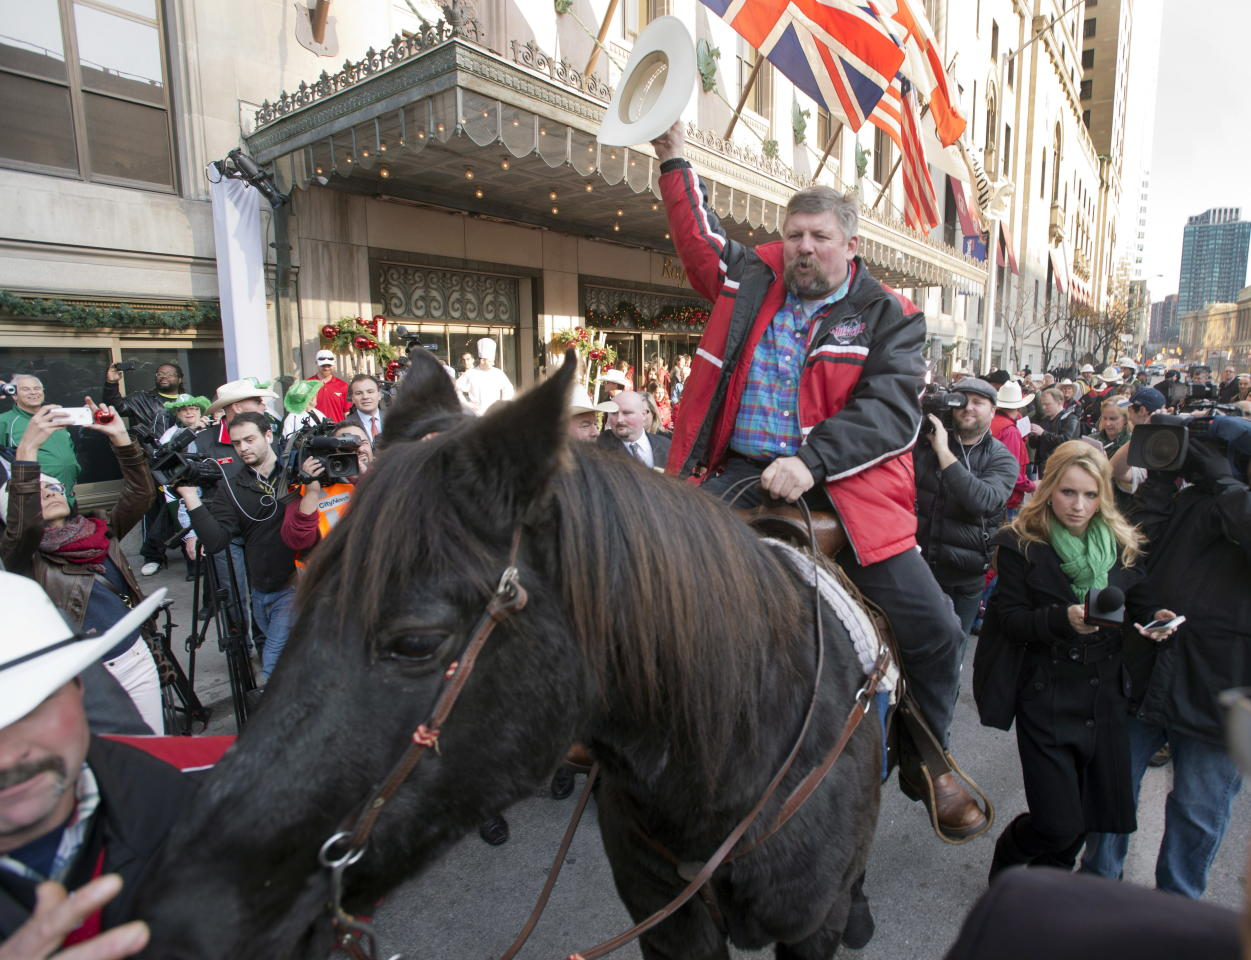 Fletcher Armstrong, with the Calgary Grey Cup committee rides his horse, Marty, past the Royal York hotel Thursday, Nov. 22, 2012 in Toronto. Calgary Stampeders will play the Toronto Argonauts in the Canadian Football League Grey Cup Sunday, Nov. 25, 2012. THE CANADIAN PRESS/Ryan Remiorz